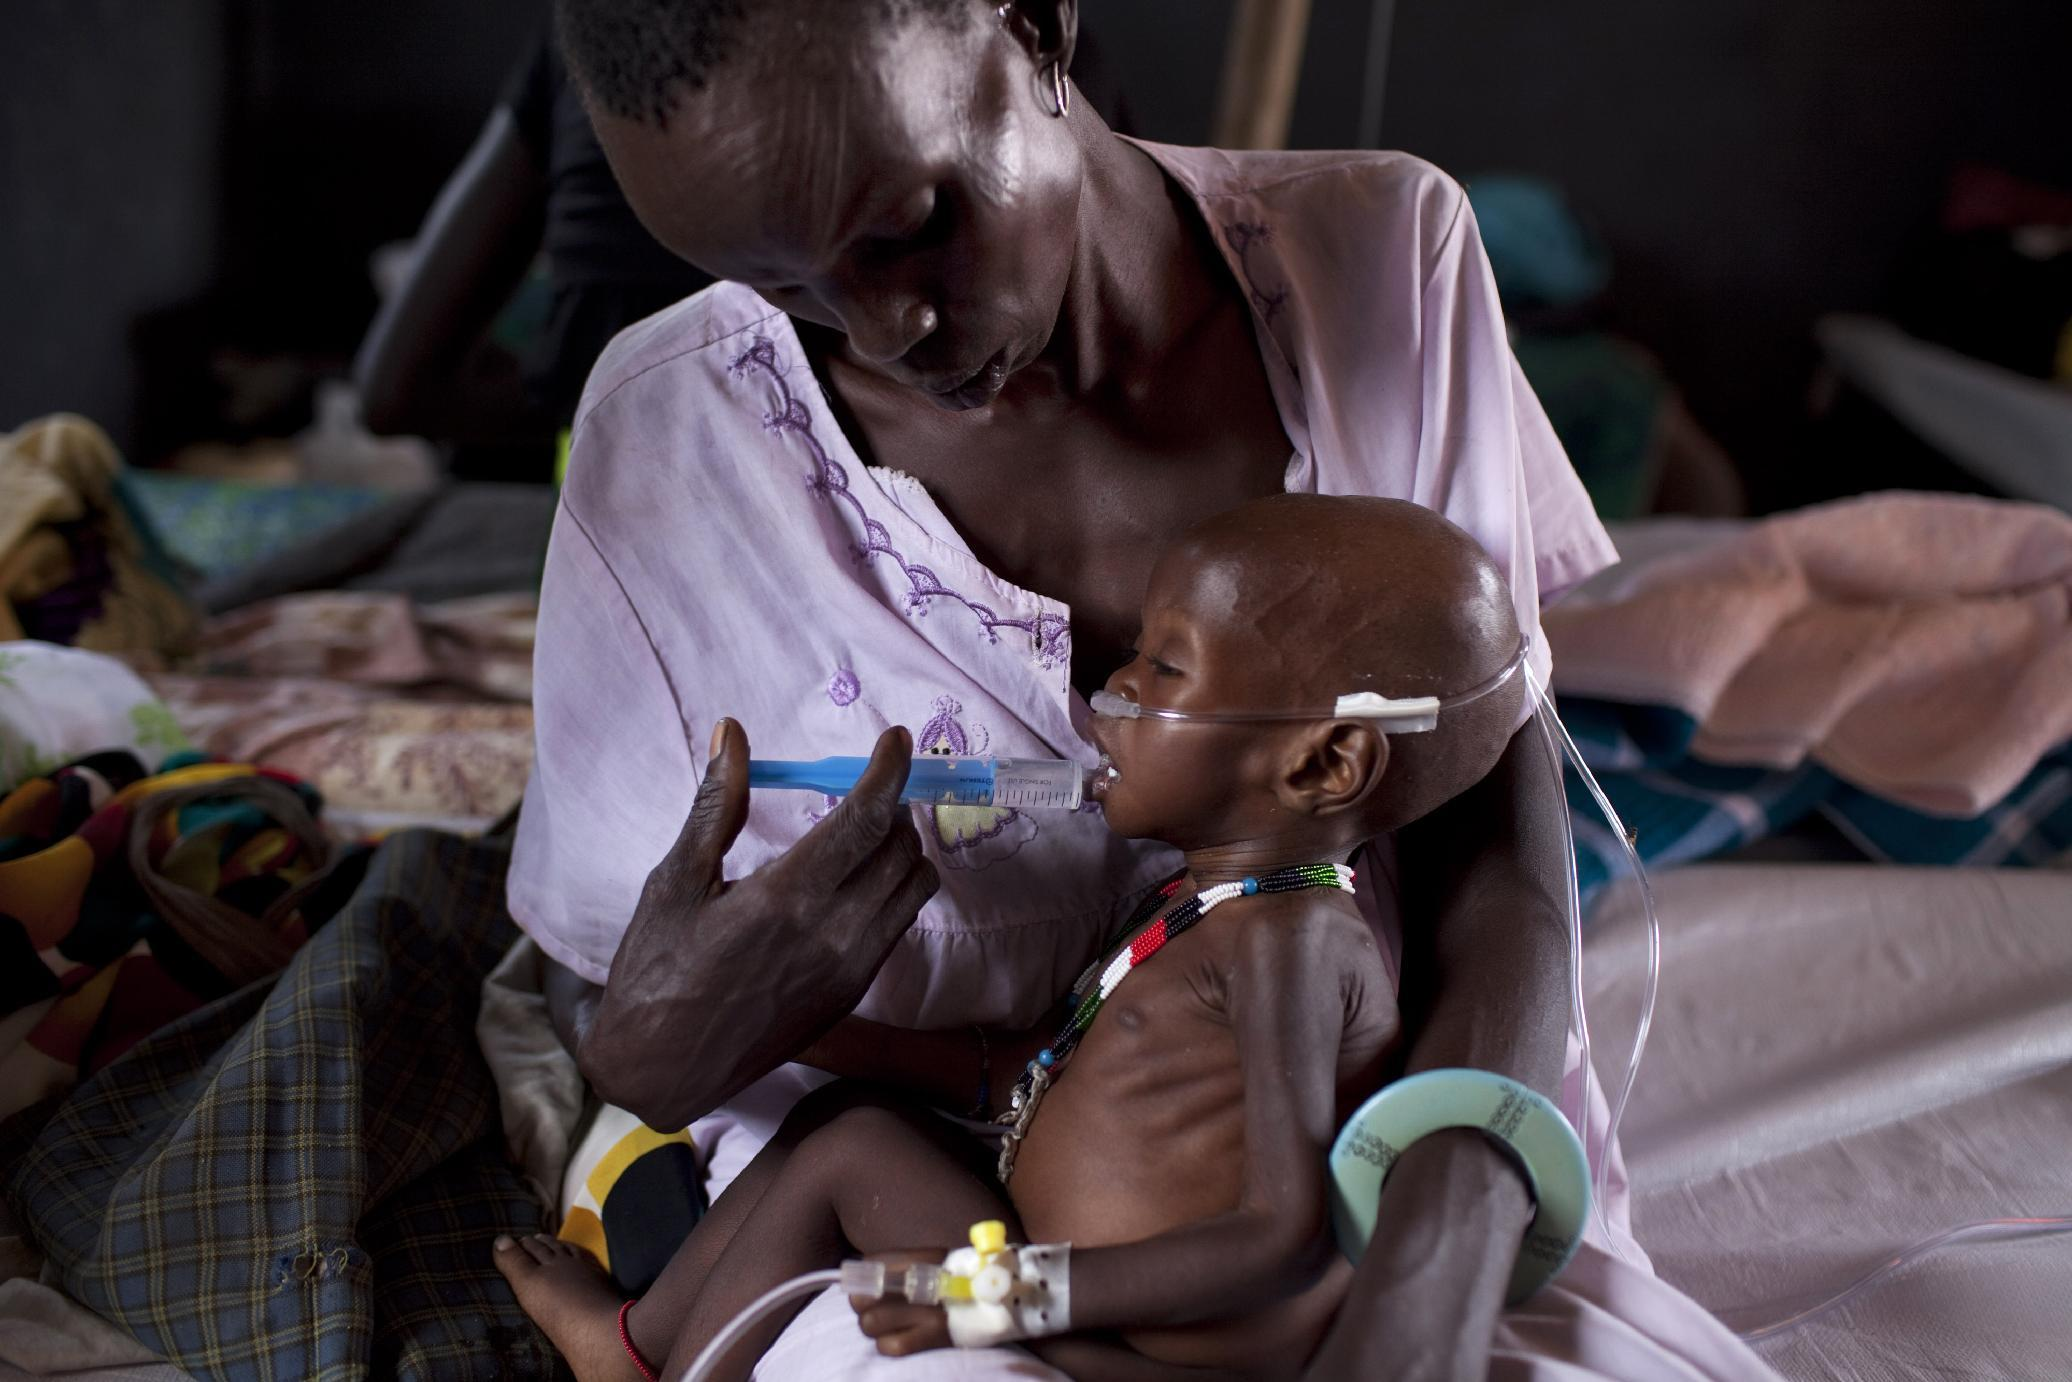 A severely malnourished child receives treatment at a medical camp run by international aid group Medecins sans Frontieres, on March 3, 2014 in Minkamman, South Sudan (AFP Photo/Jm Lopez)